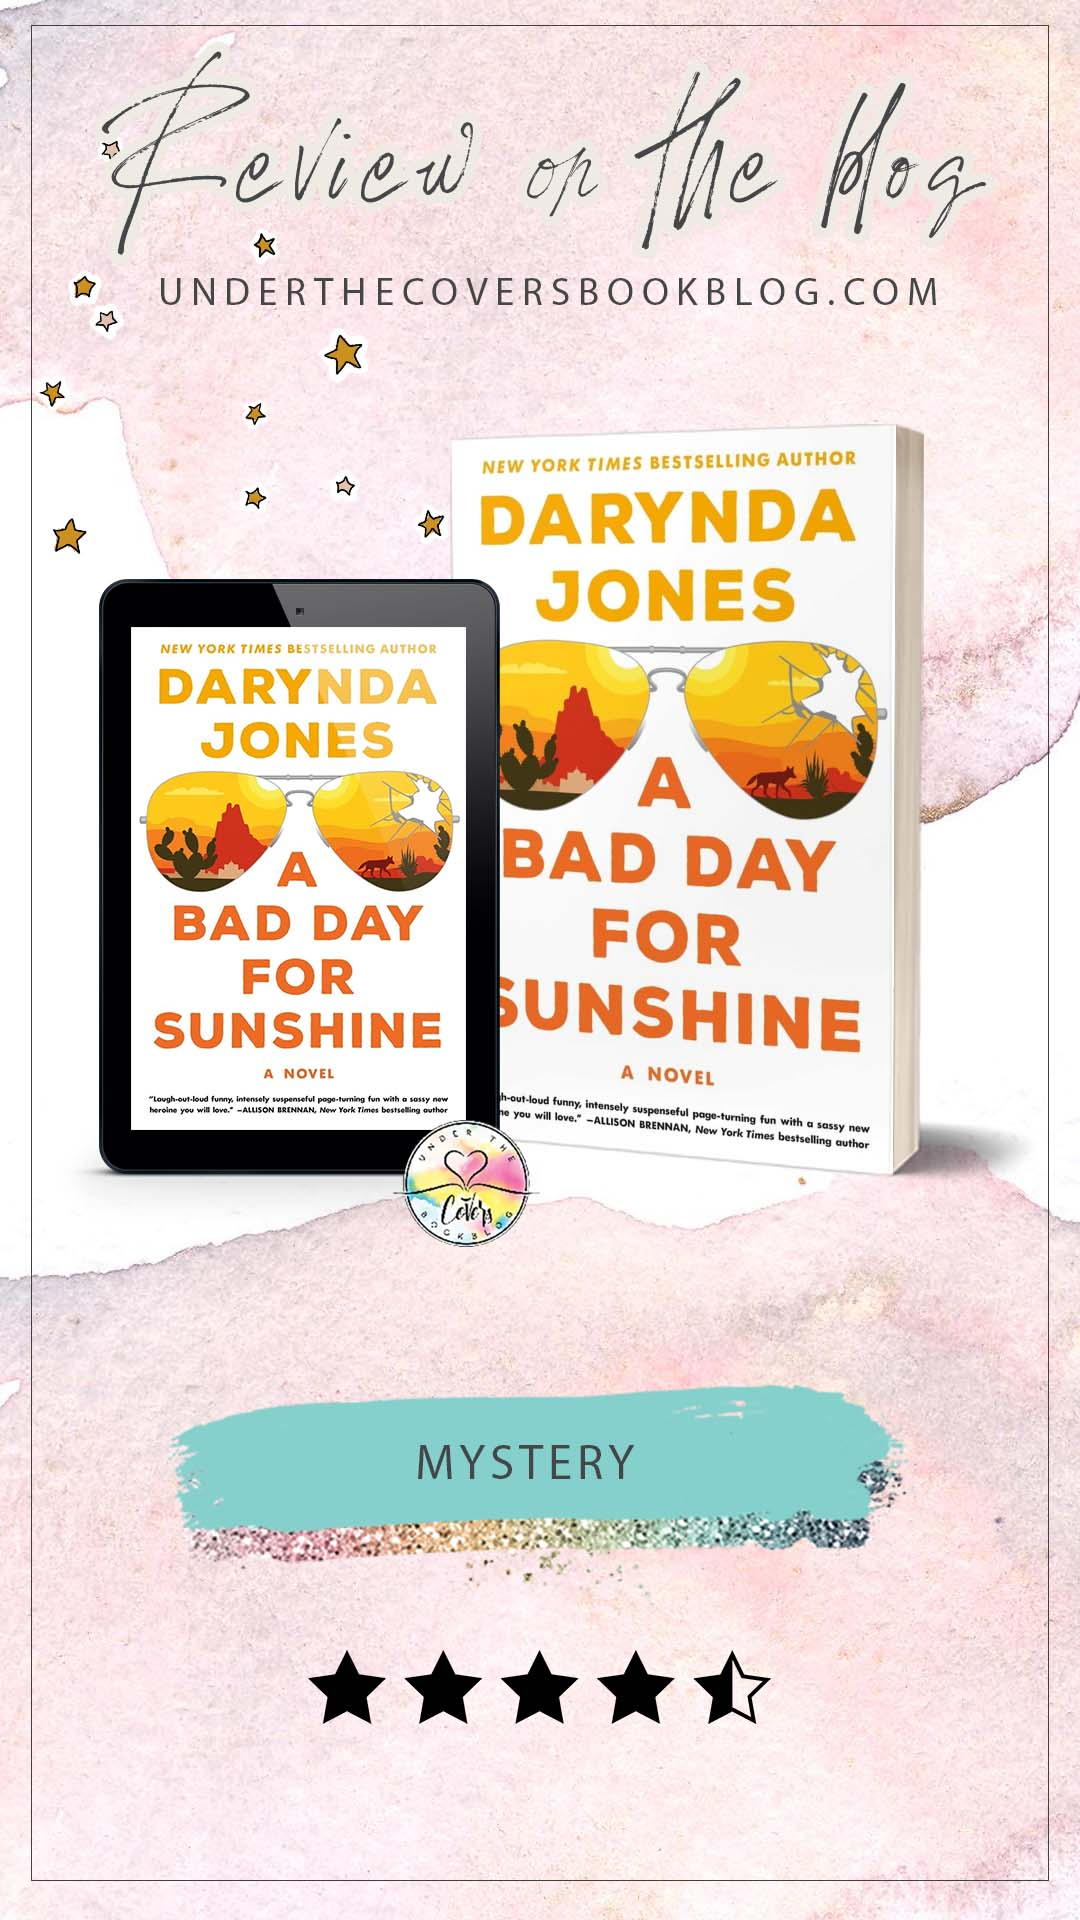 ARC Review: A Bad Day for Sunshine by Darynda Jones